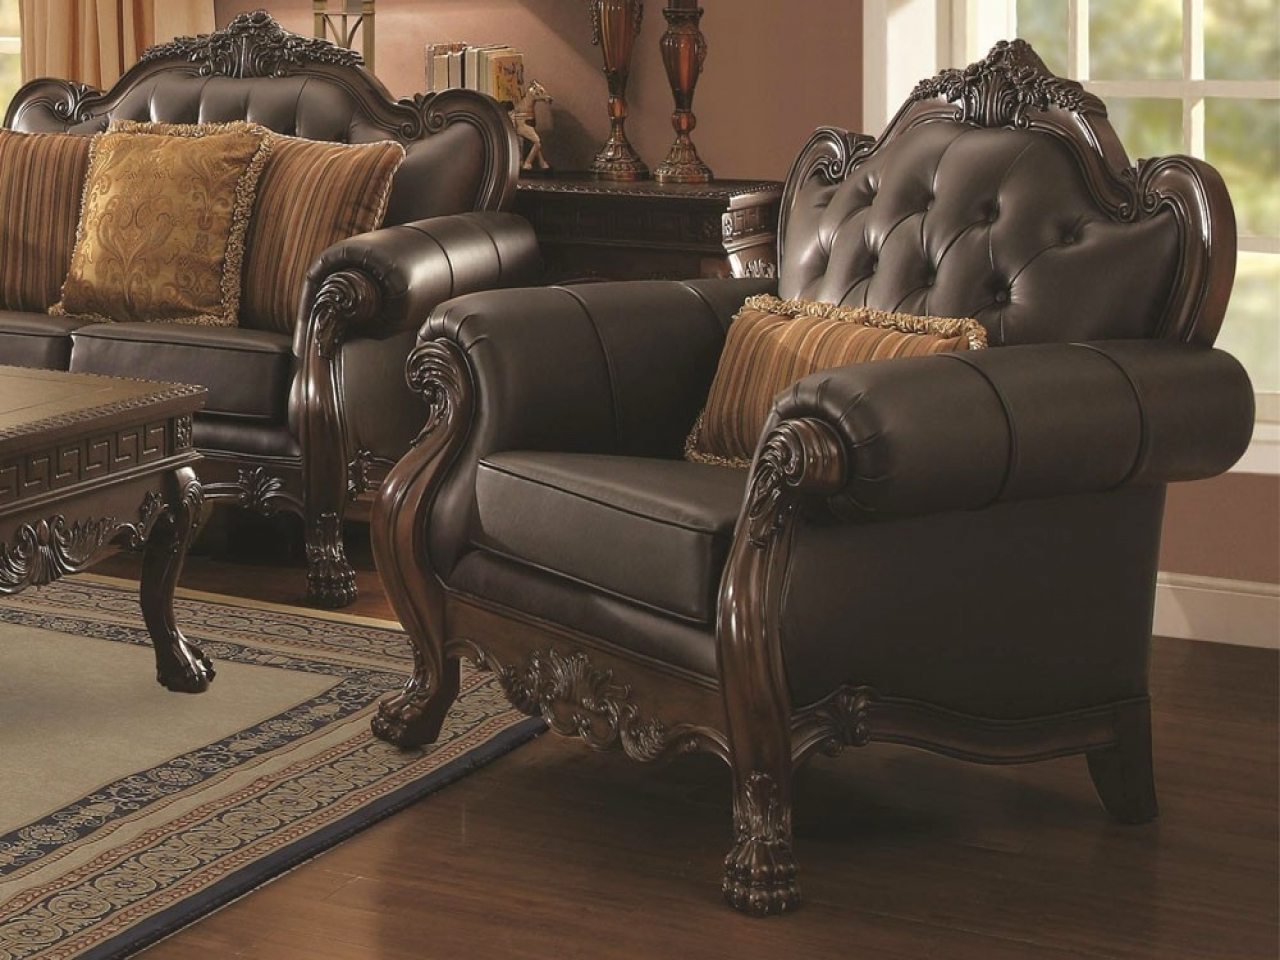 Well Known Victorian Leather Sofas Inside Living Room : Victorian Leather Sofa Leather Couches For Sale L (View 13 of 15)